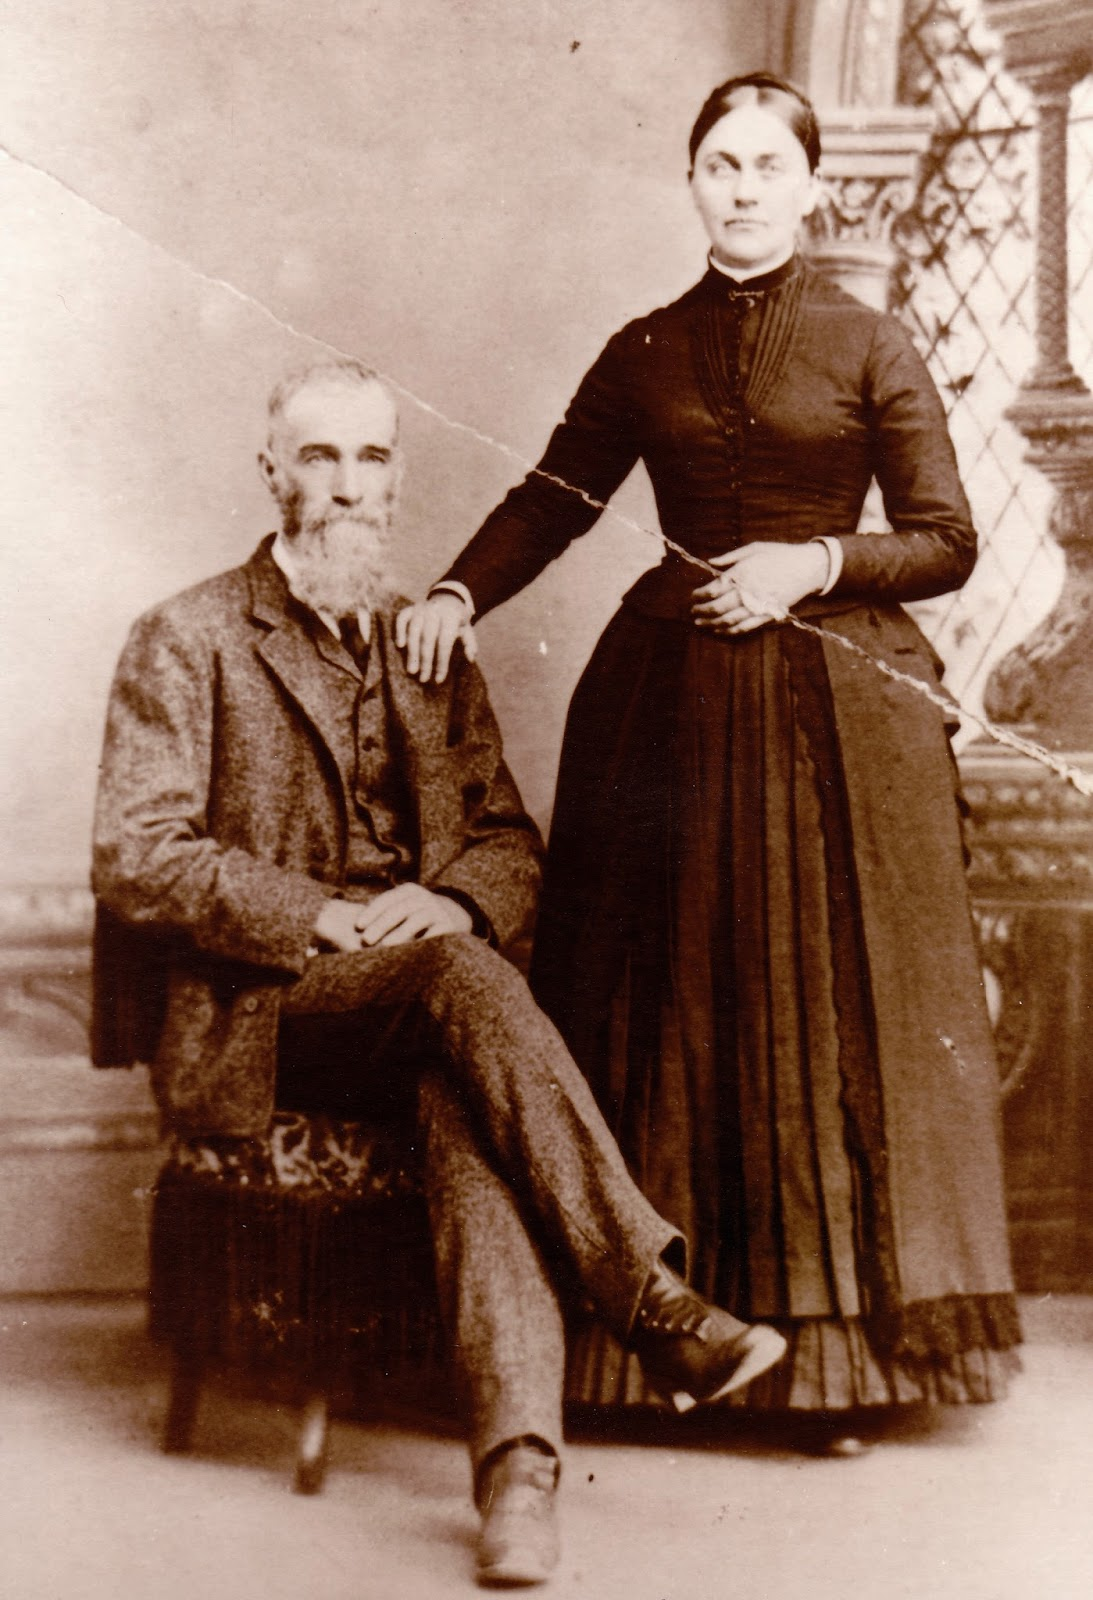 William Wilson Joseph and wife Eliza Jane Spitler, Augusta Co., VA